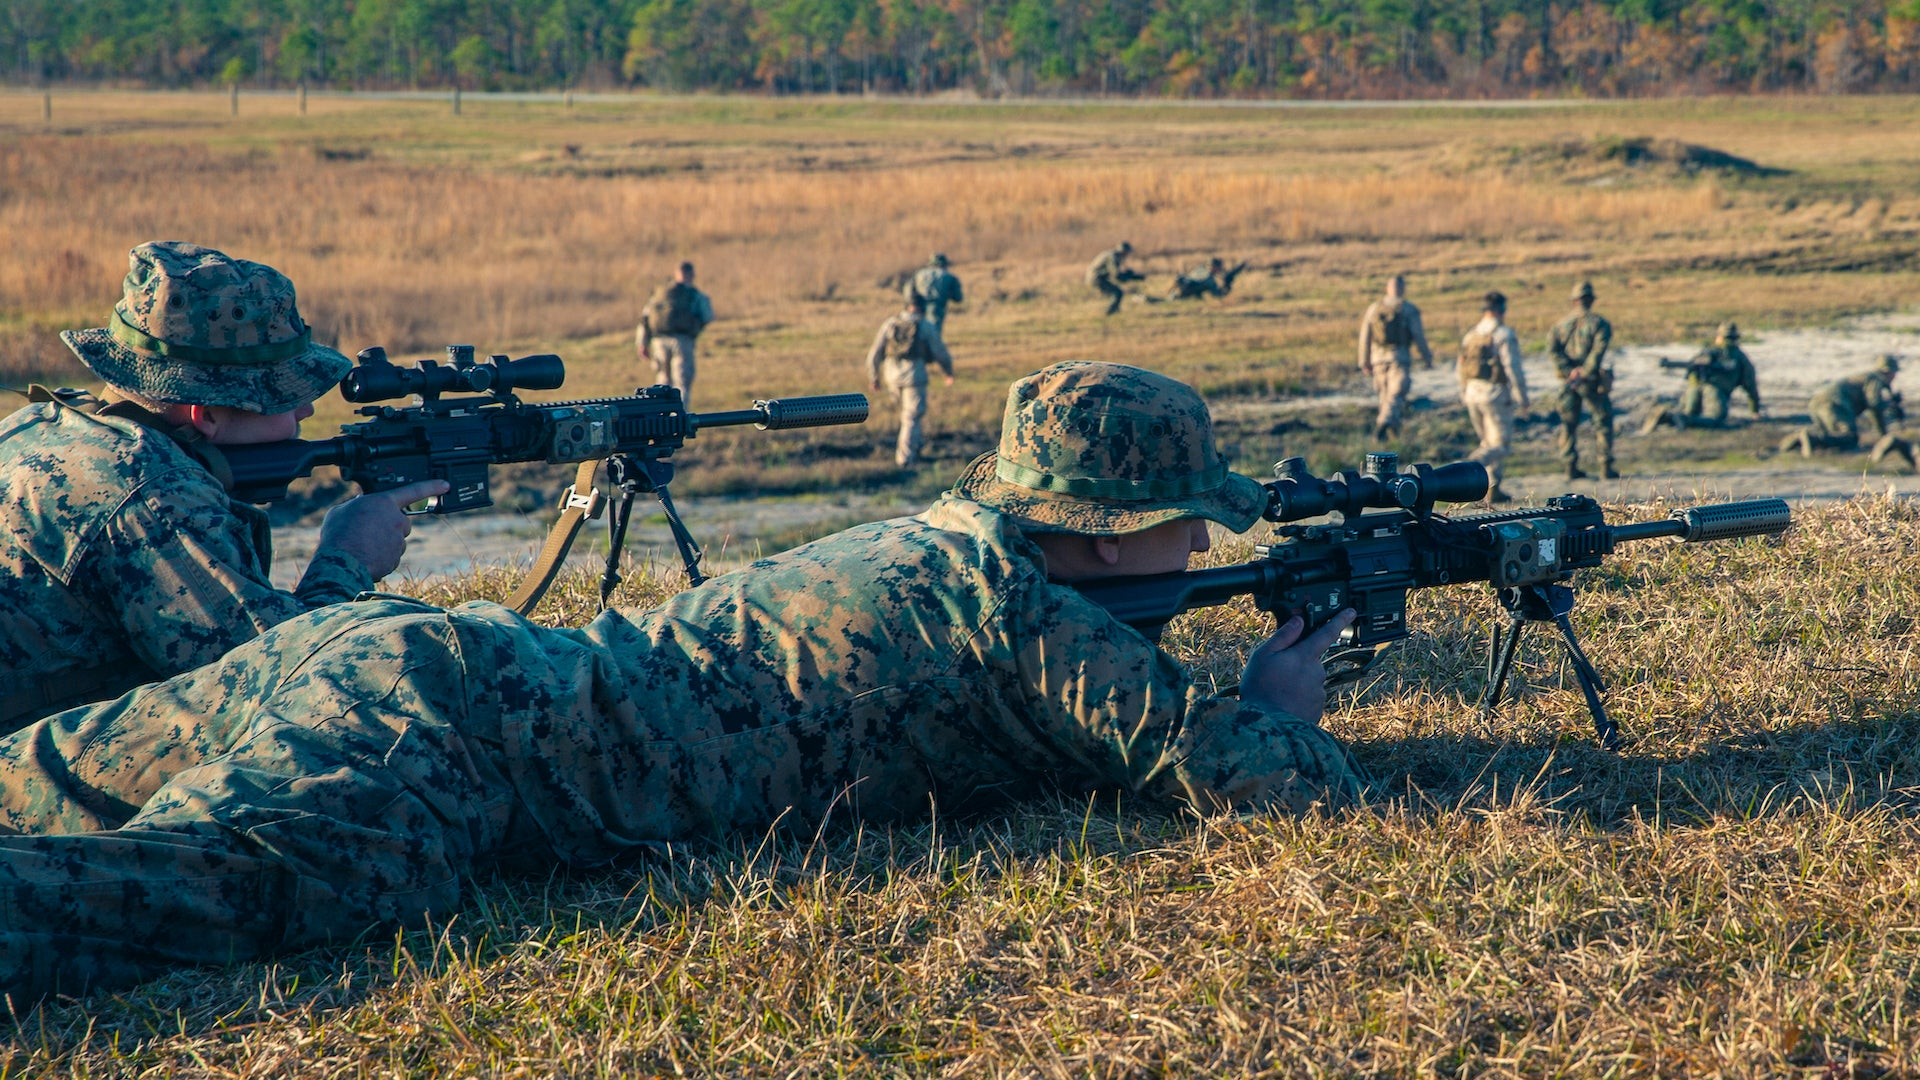 The Marine Corps has started fielding suppressors to infantry squads